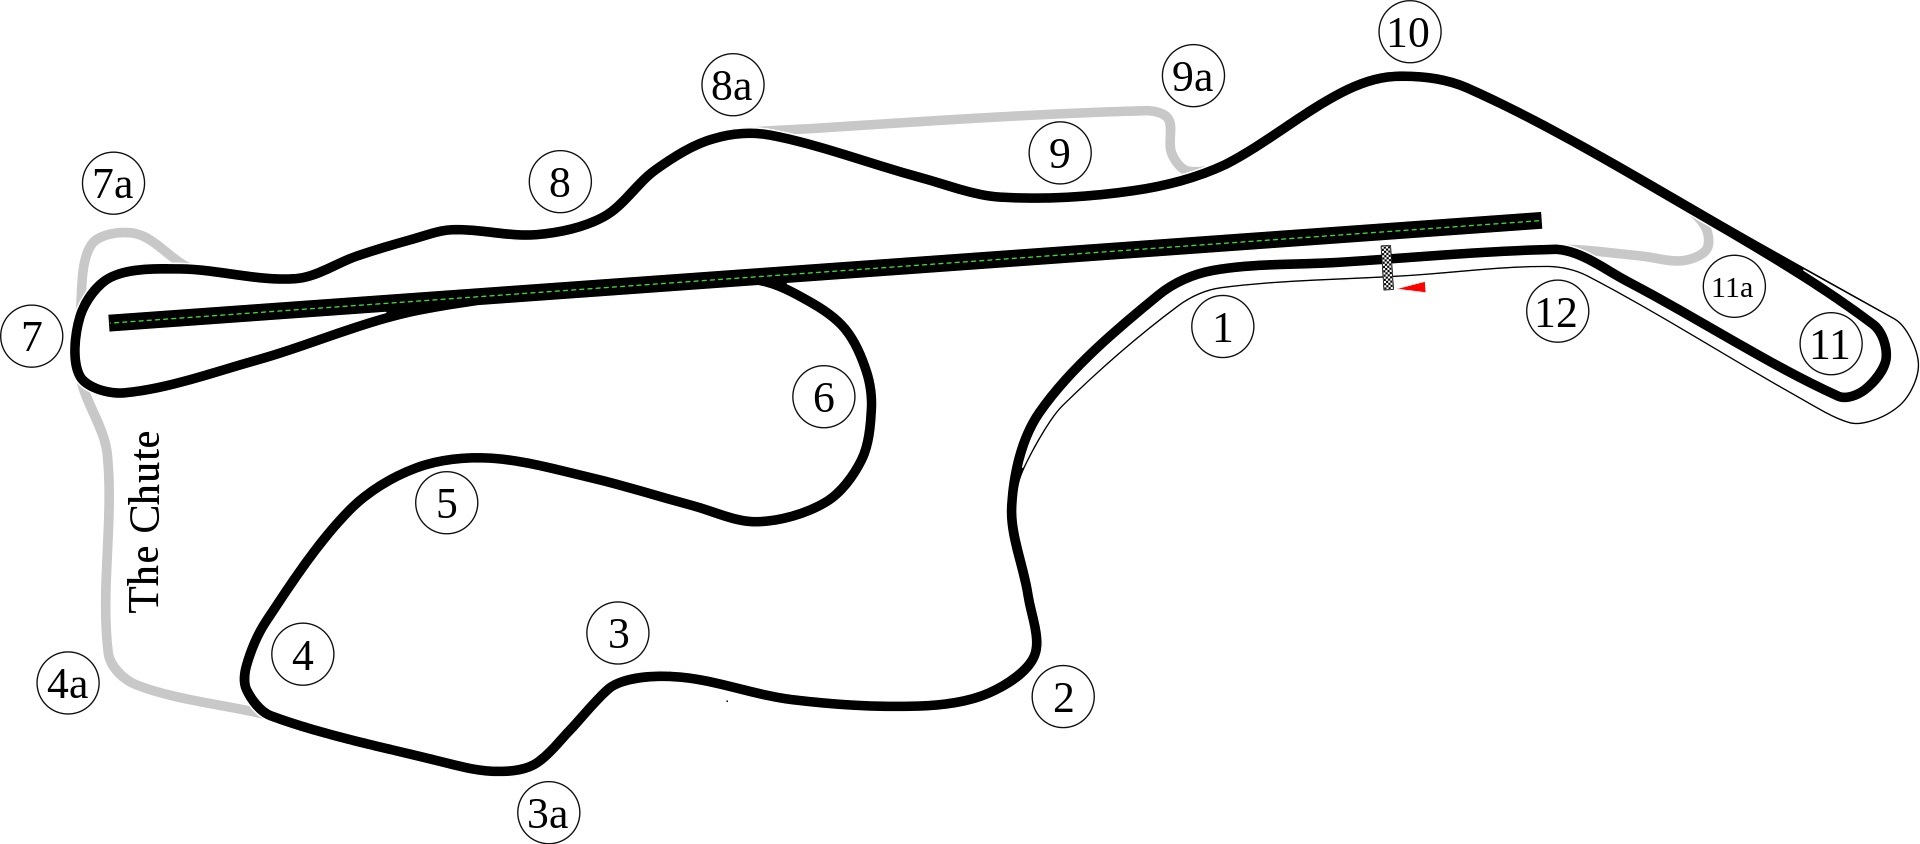 1920px-Infineon_(Sears_Point)_with_emphasis_on_Long_track.jpg